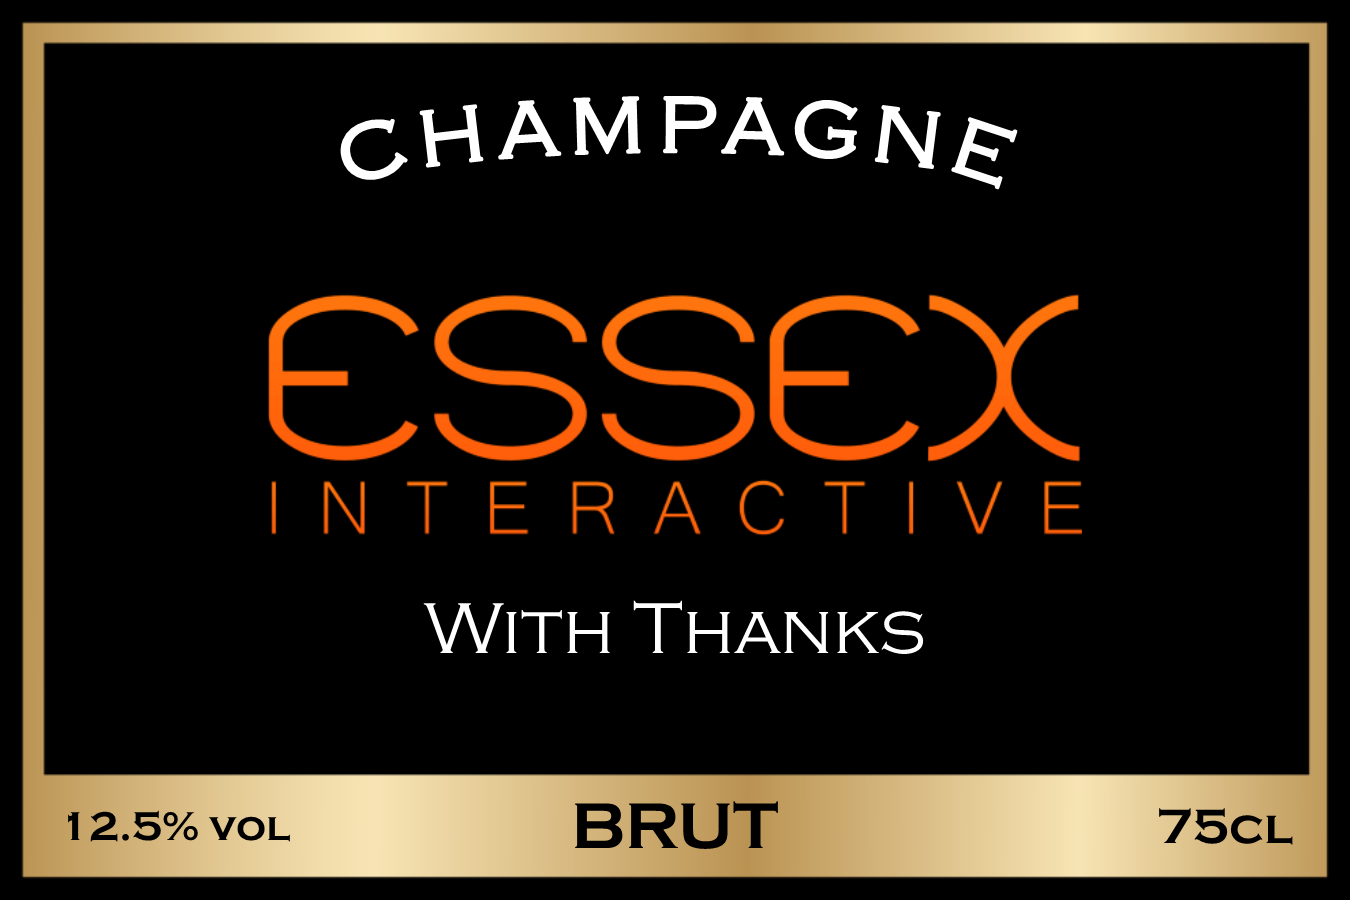 Essex Interactive Branded Label